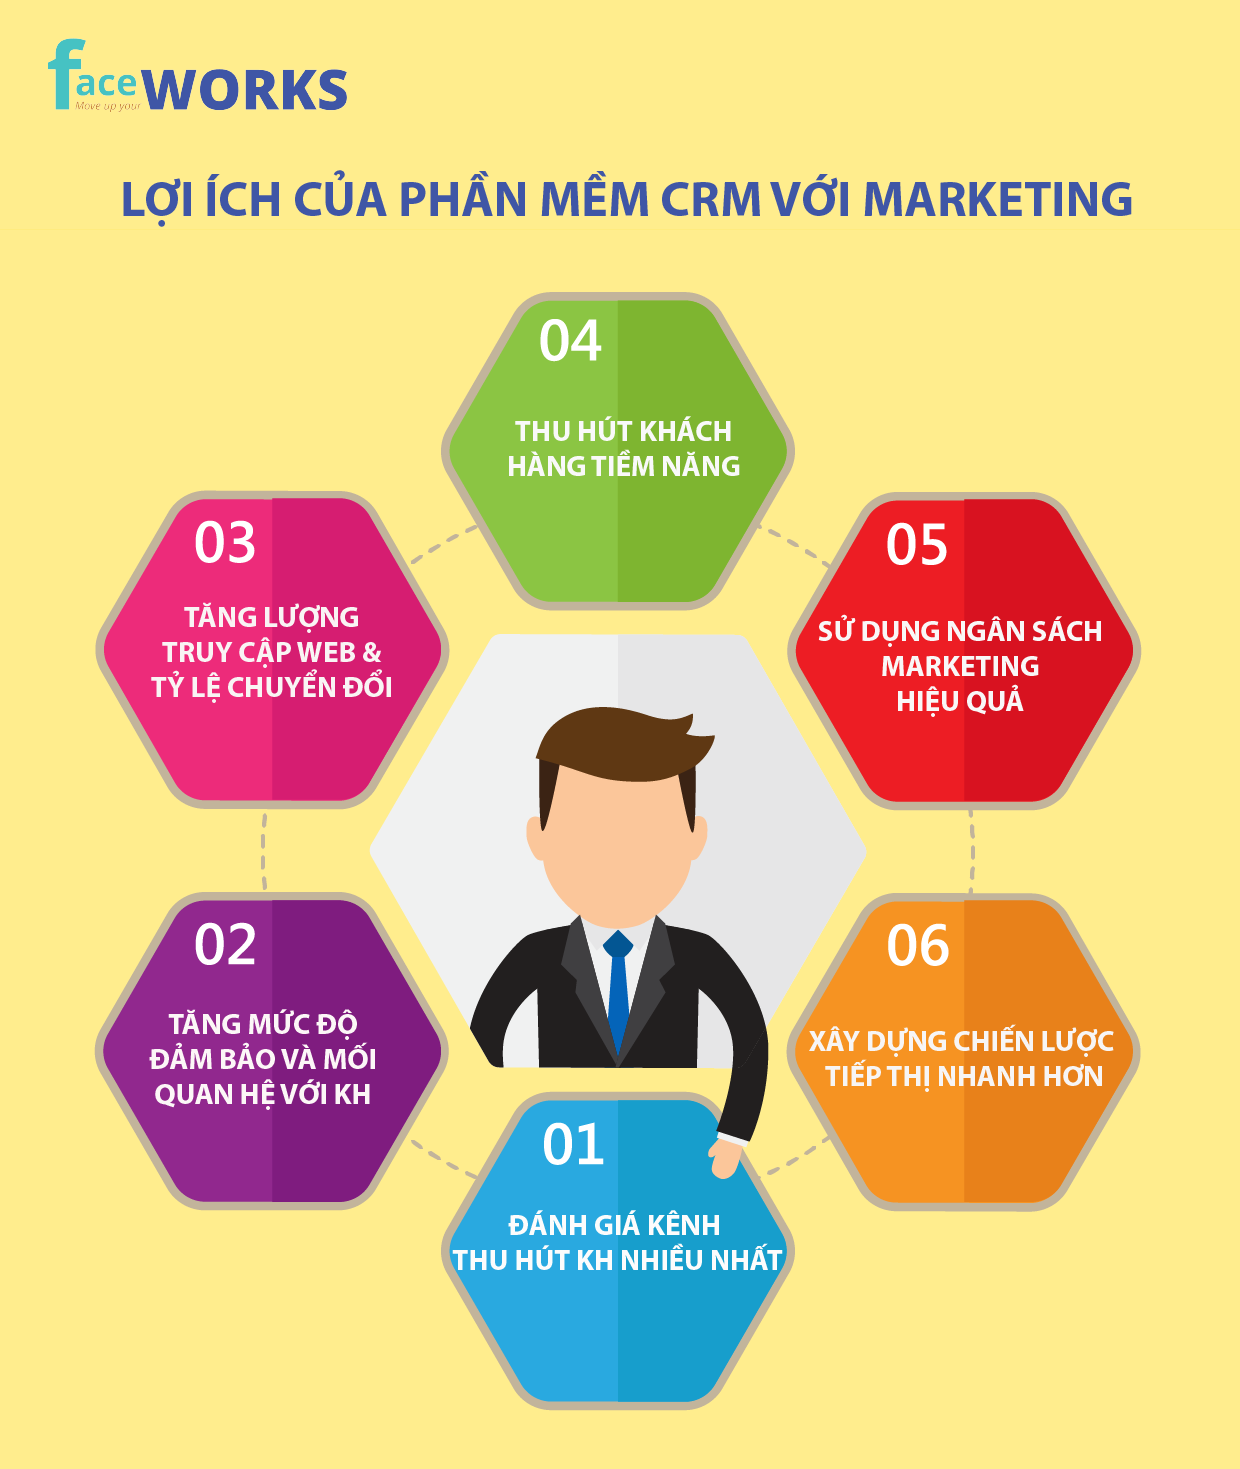 loi-ich-cua-phan-mem-crm-voi-marketing-01